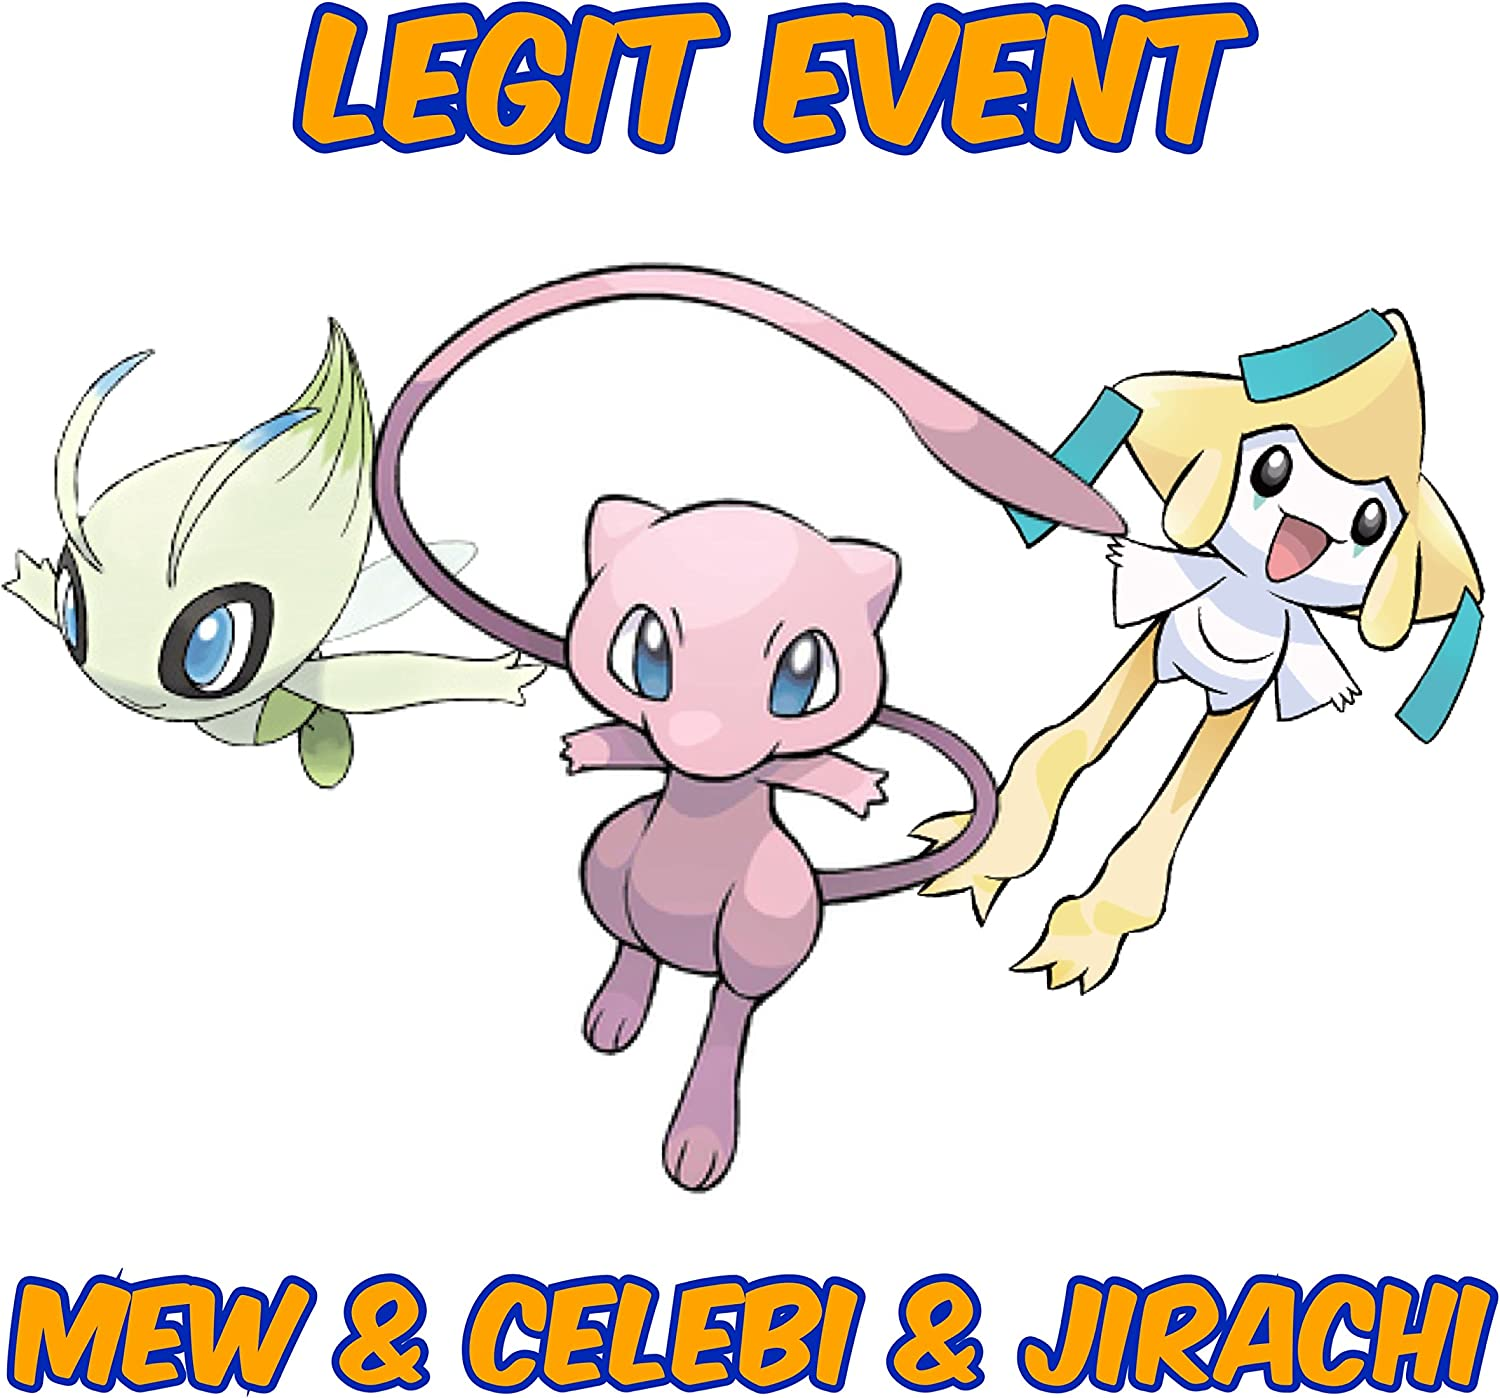 Amazon com: Legit Event Mew Celebi & Jirachi: Video Games